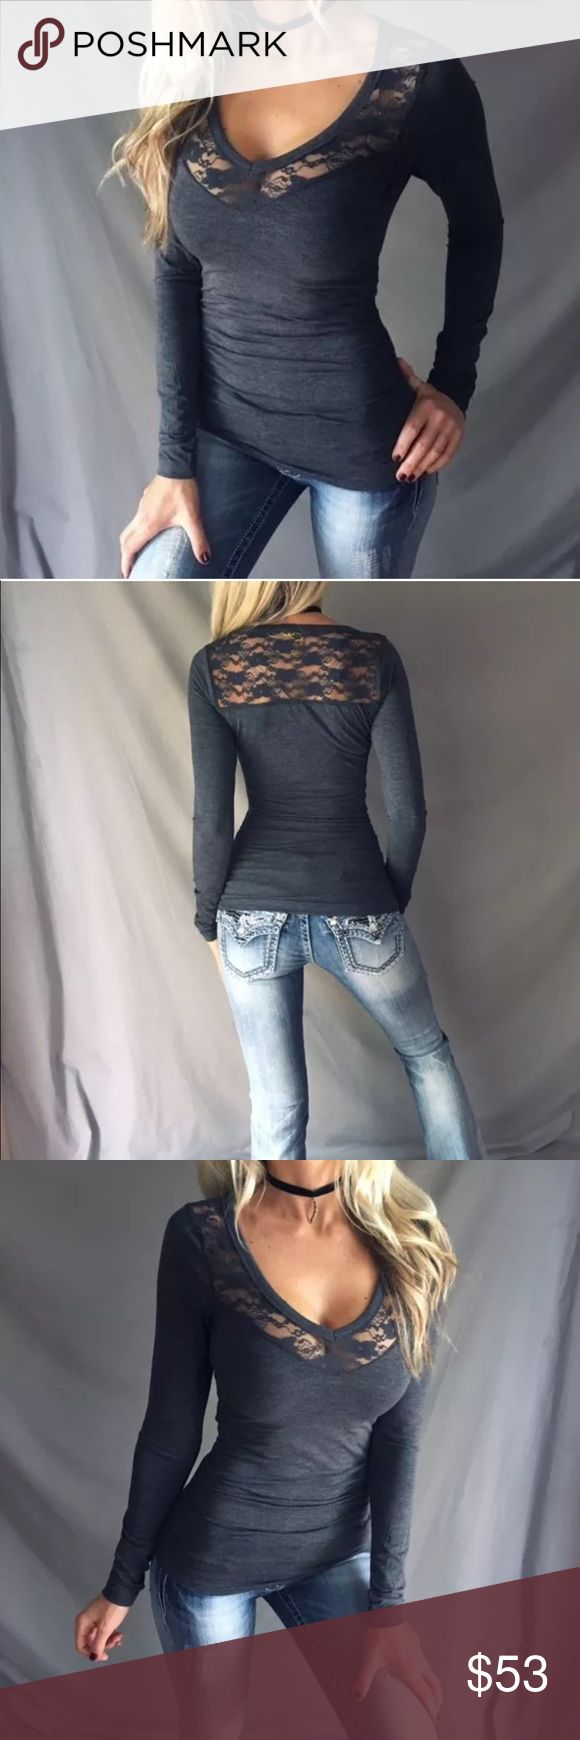 Just in! Sexy V-Neck Lace Back Fitted Top Sexy V-Neck Lace Back Fitted Long Sleeve TopColor: Charcoal GrayAvailable in Small, Medium + Large (limited amount, so don't wait!) Ruched sides, feminine Lace detailingSuper cute + soft stretch fabricI consider KIND offers but on brand new boutique items, bundle for 15% off 2 or ask for a custom bundle when buying 3+ Tops Tees - Long Sleeve